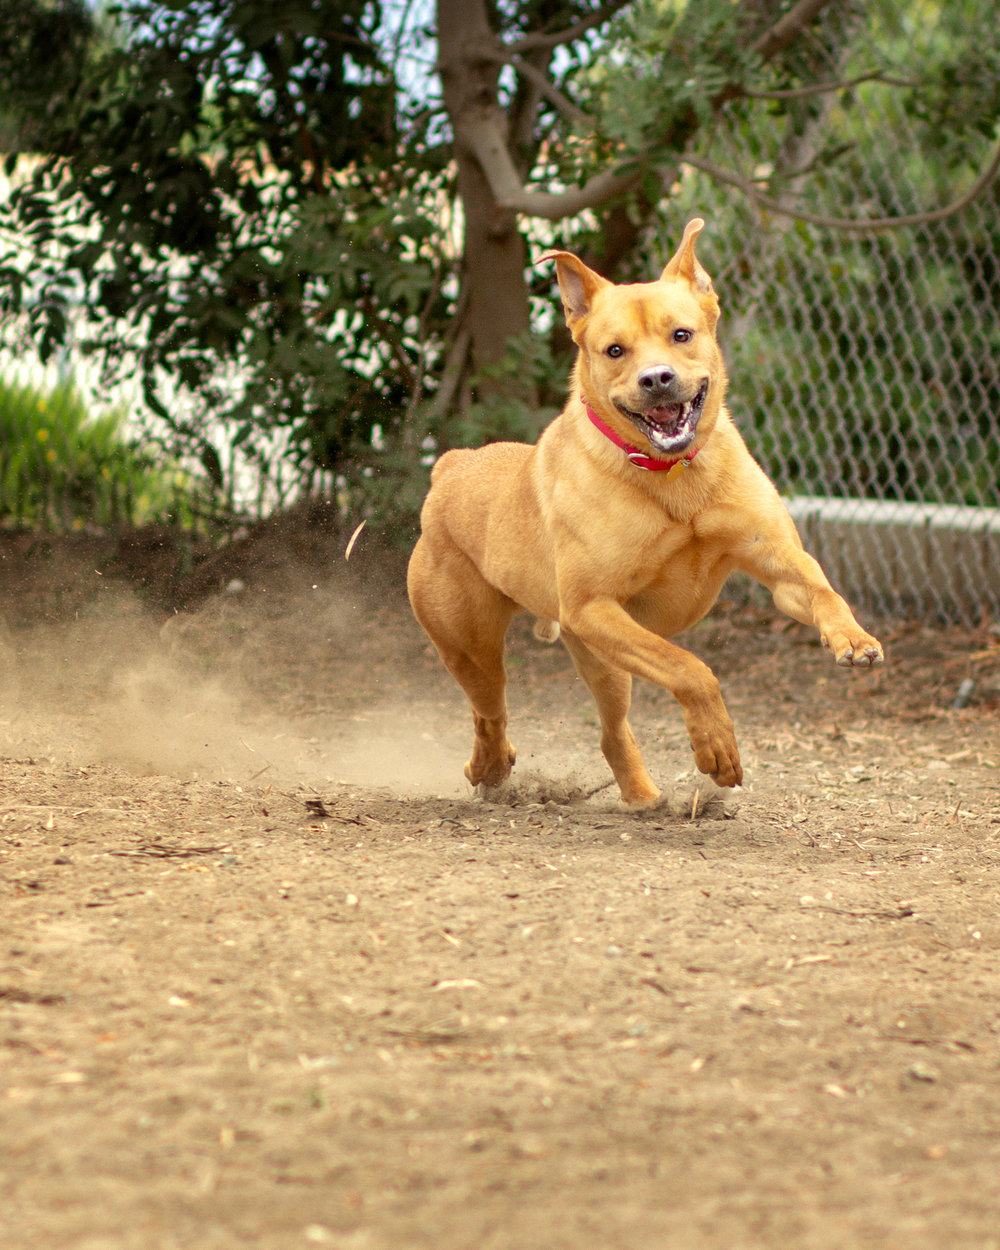 400-Orange-County-Dog-Photography-Steamer-Lee-Southern-California-SBACC.JPG